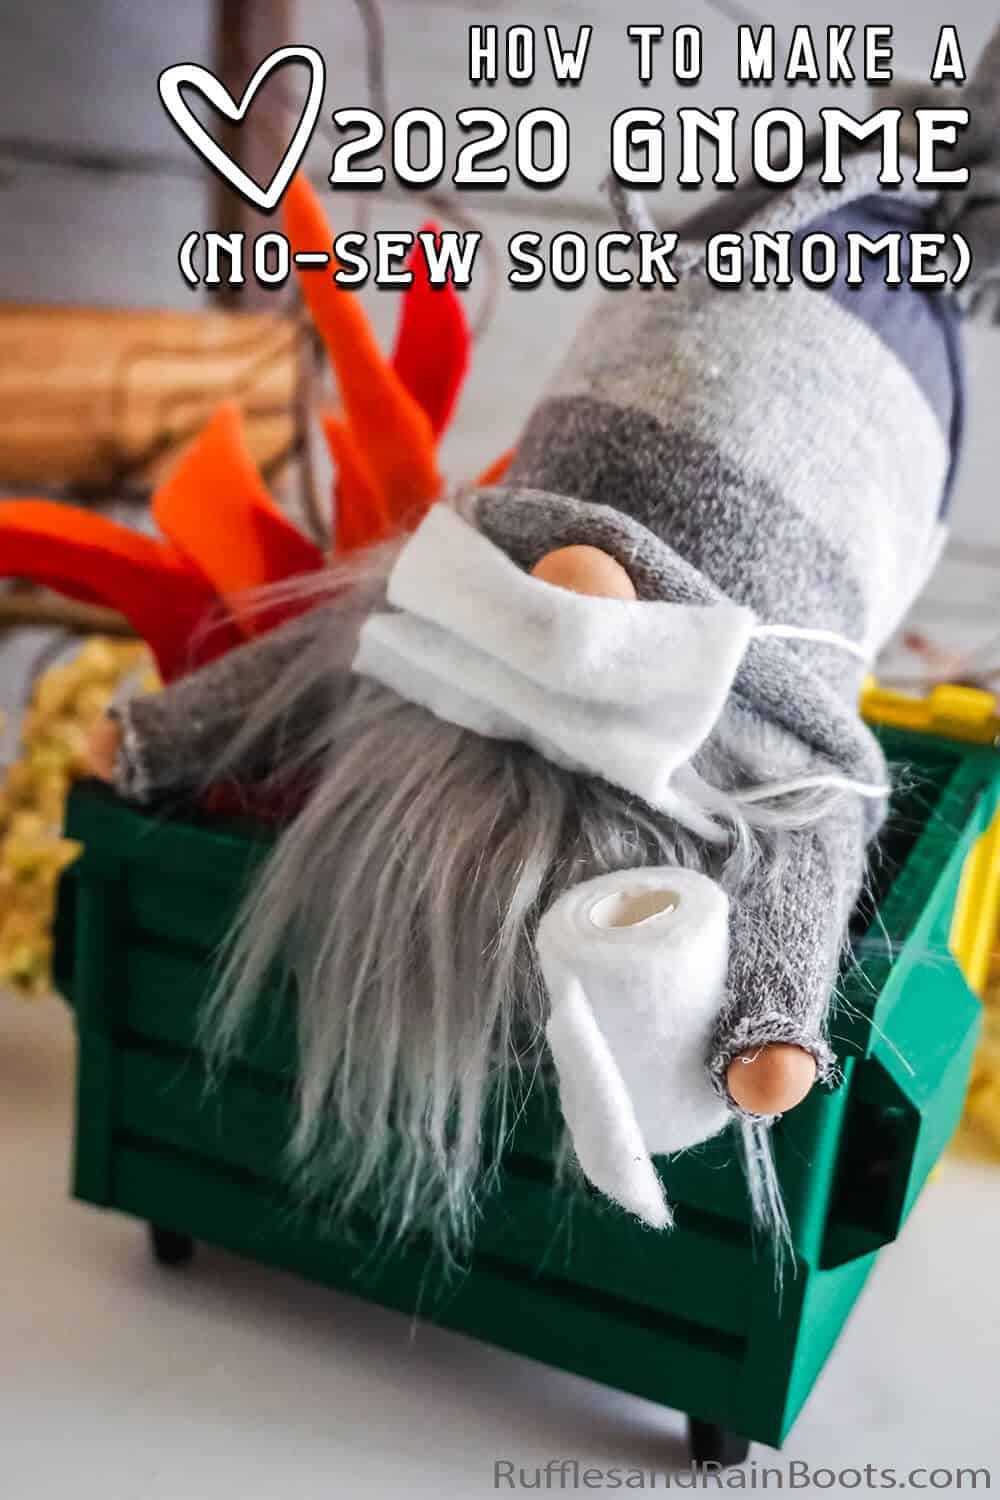 dumpster gnome with mask and toilet paper with text which reads how to make a 2020 gnome (no-sew sock gnome)